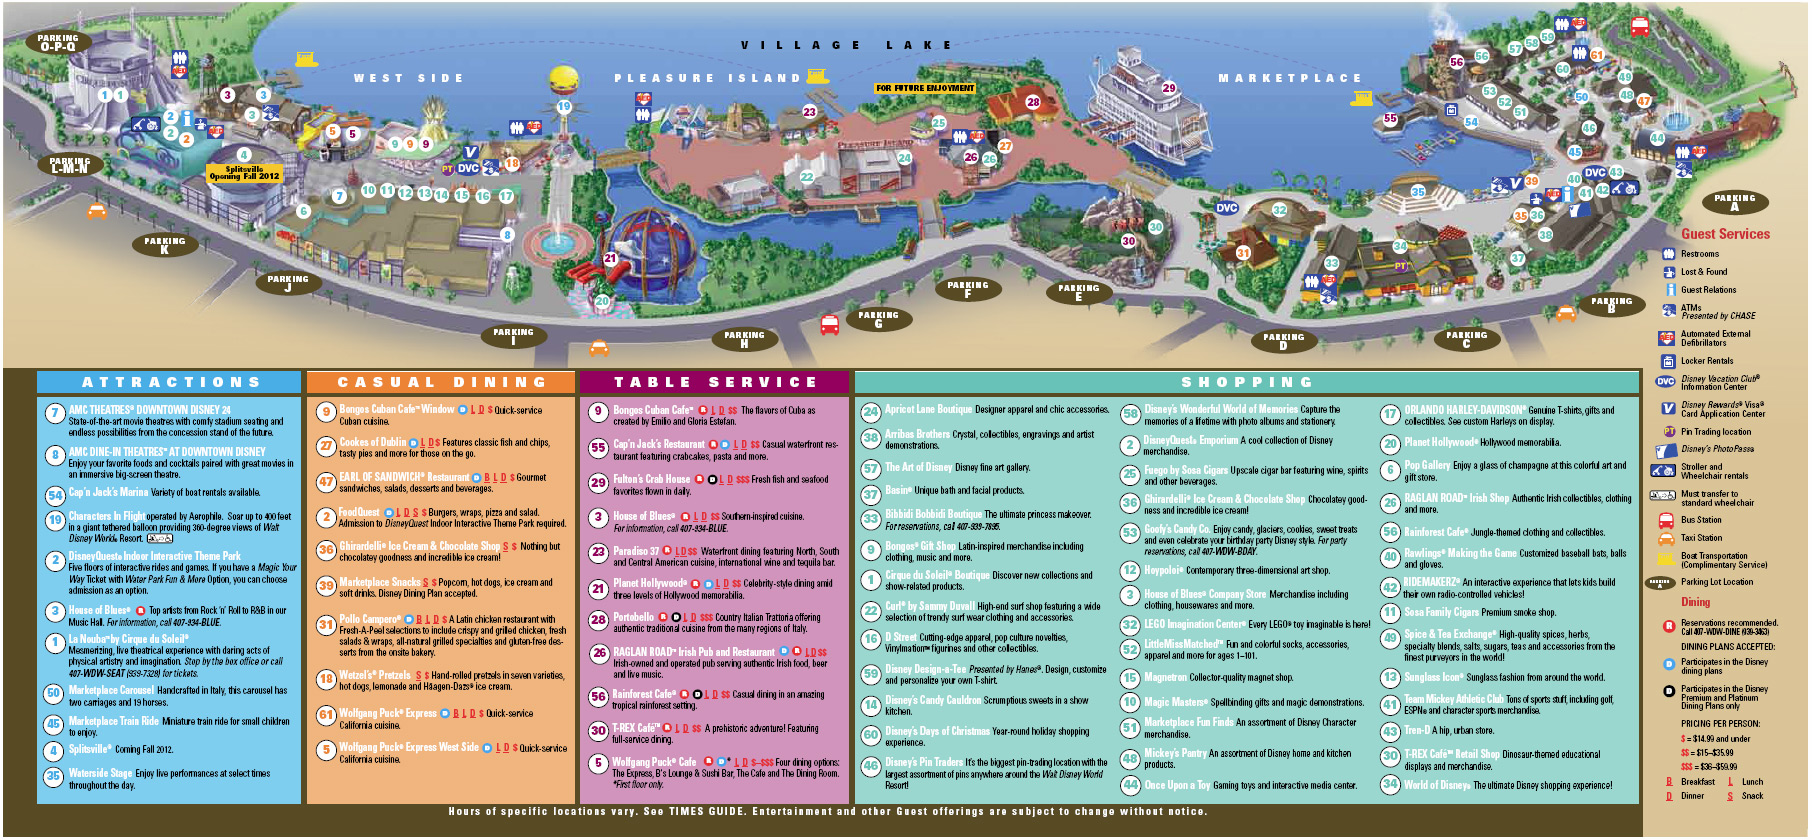 map of downtown disney orlando fl Downtown Disney Map September 2011 Photo 1 Of 1 map of downtown disney orlando fl